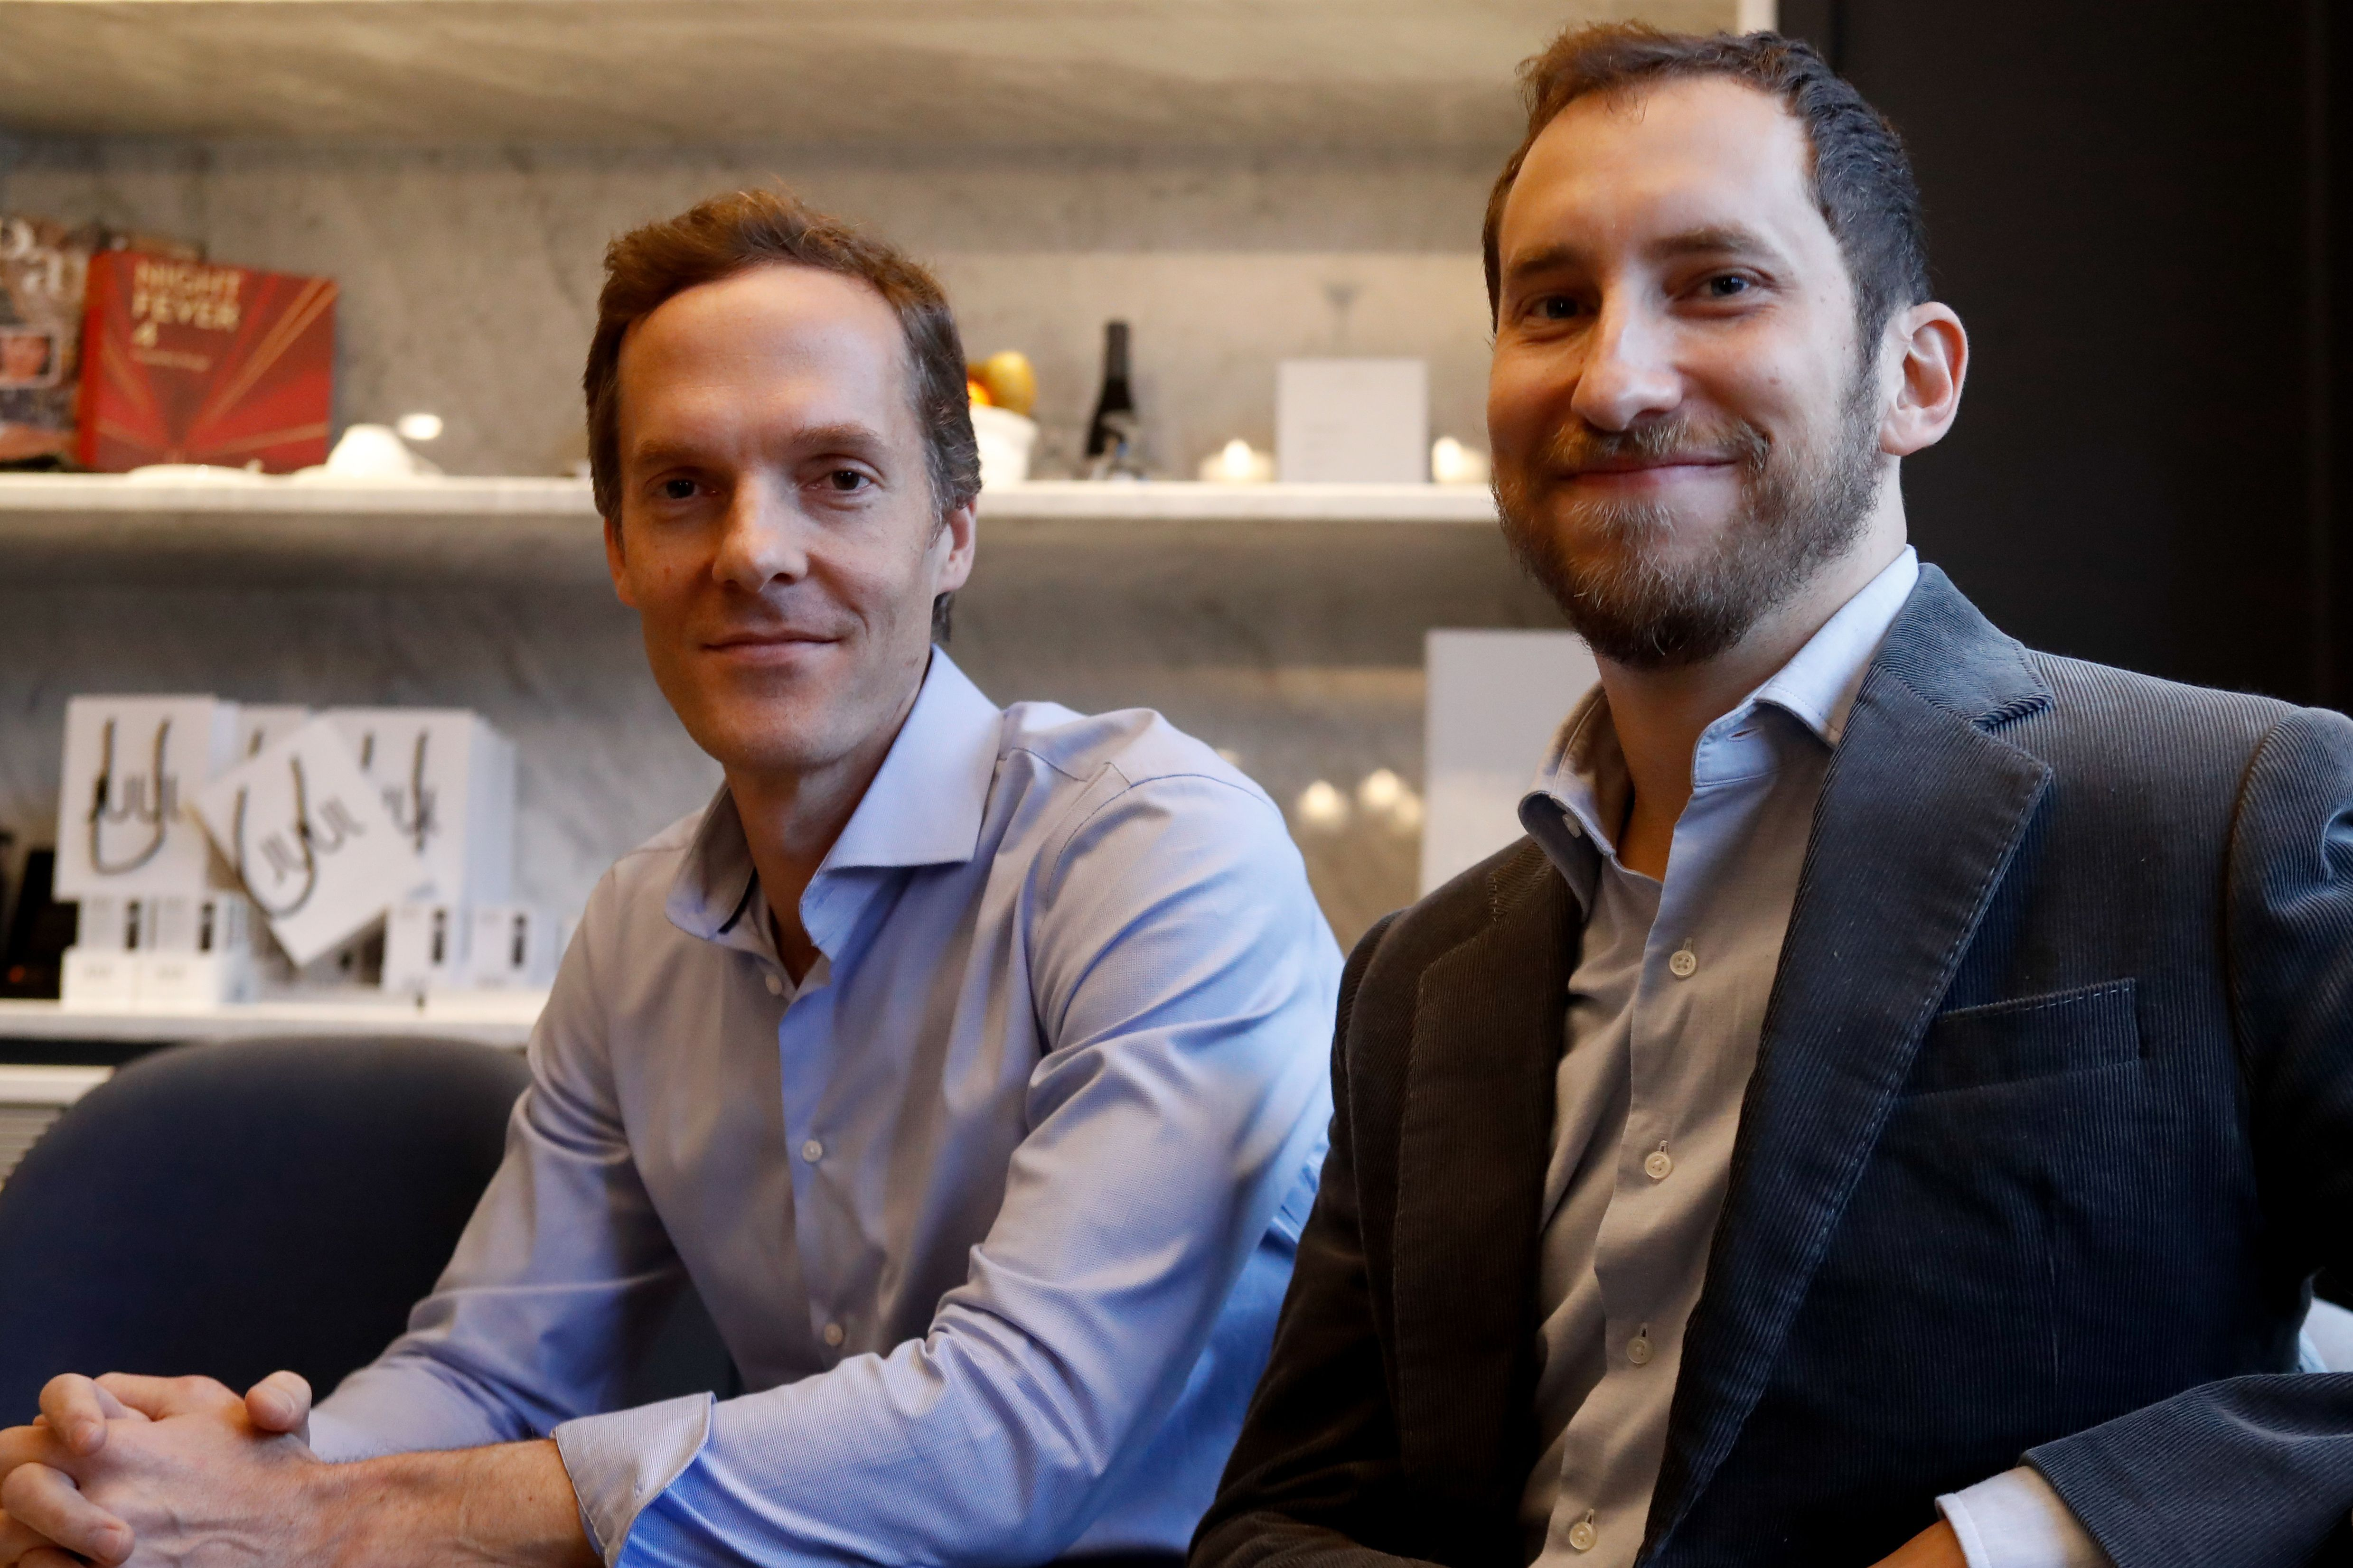 Co-founders of US start-up company Juul, Adam Bowen (L) and James Monsees pose in Paris on December 5, 2018. (FRANCOIS GUILLOT/AFP/Getty Images)